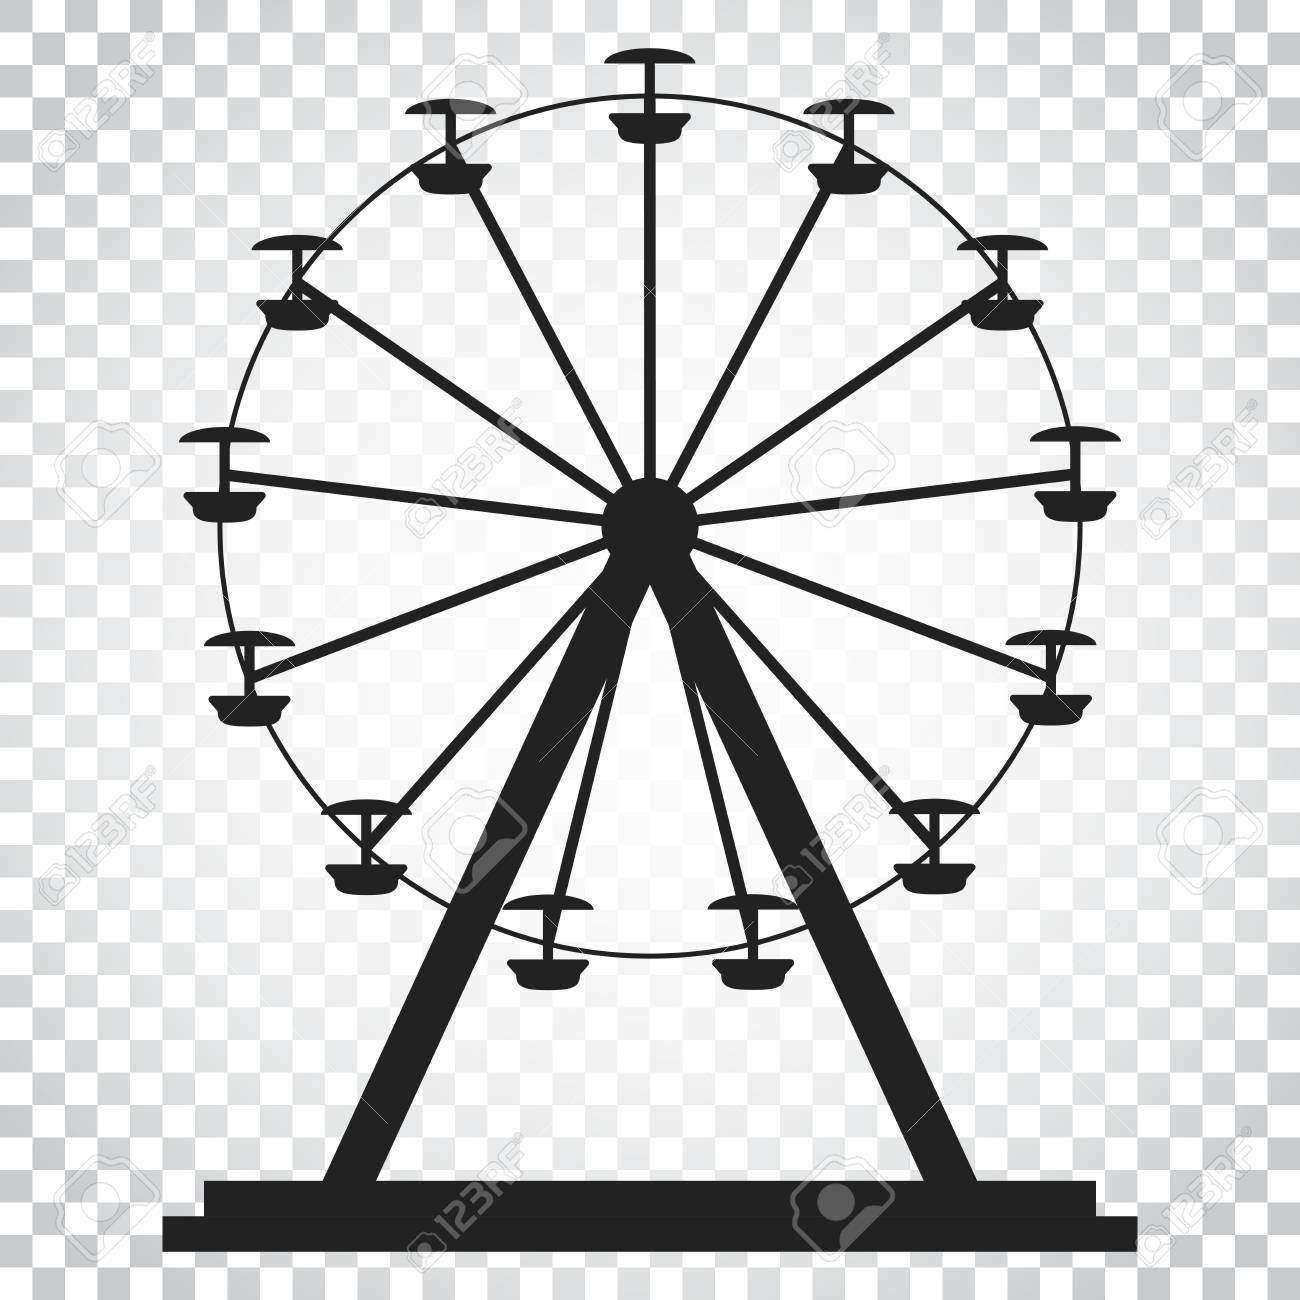 Ferris Wheel Vector Icon Carousel In Park Icon Amusement Ride Royalty Free Cliparts Vectors And Stock Illustration Image 82974209